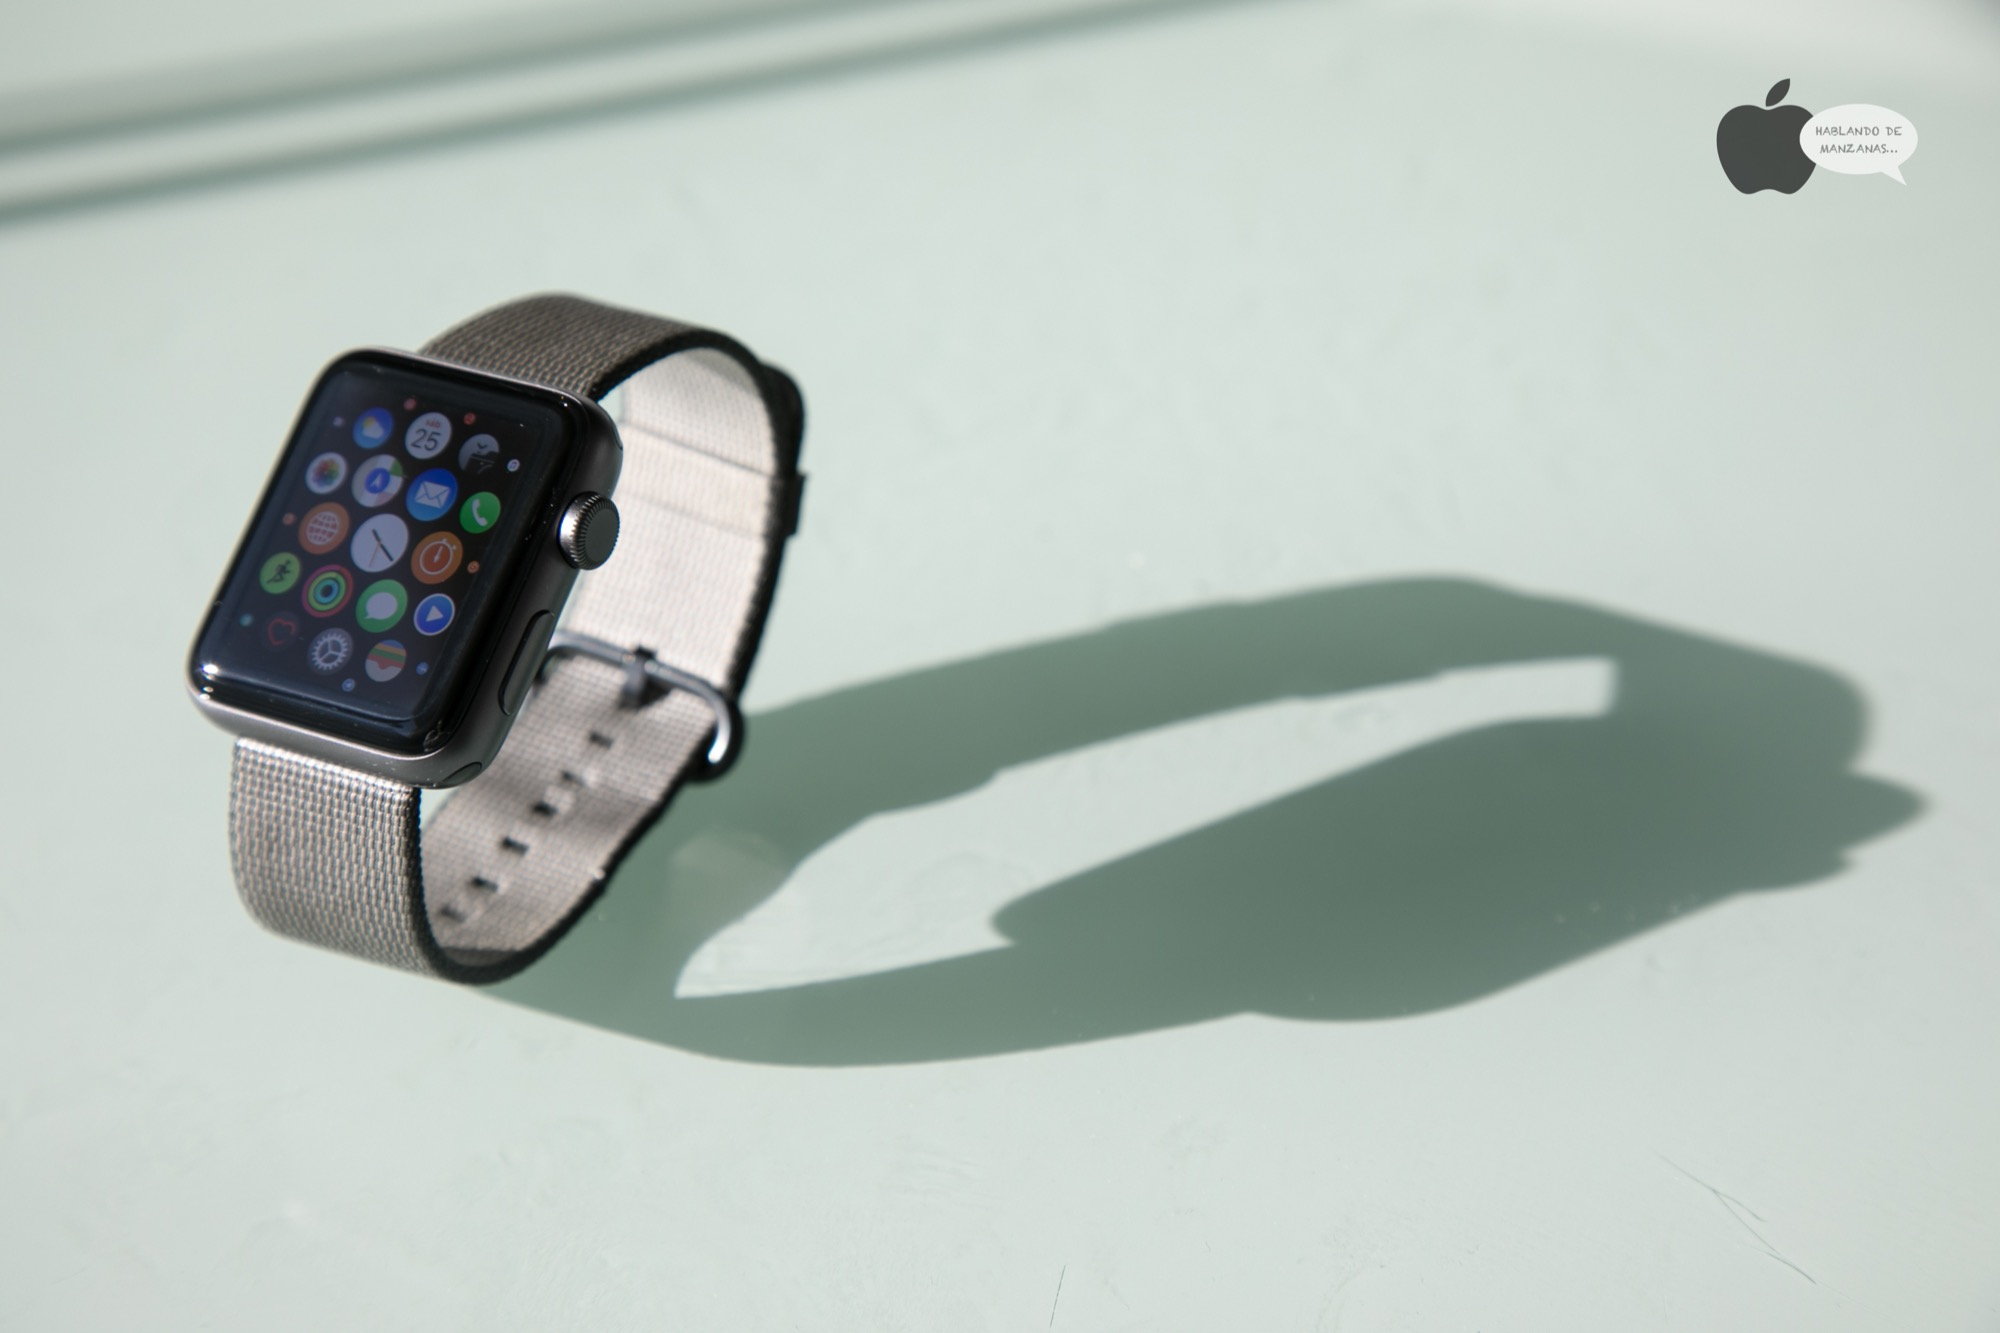 Experiencia con el Apple Watch Series 2 tras (casi) 6 meses de uso